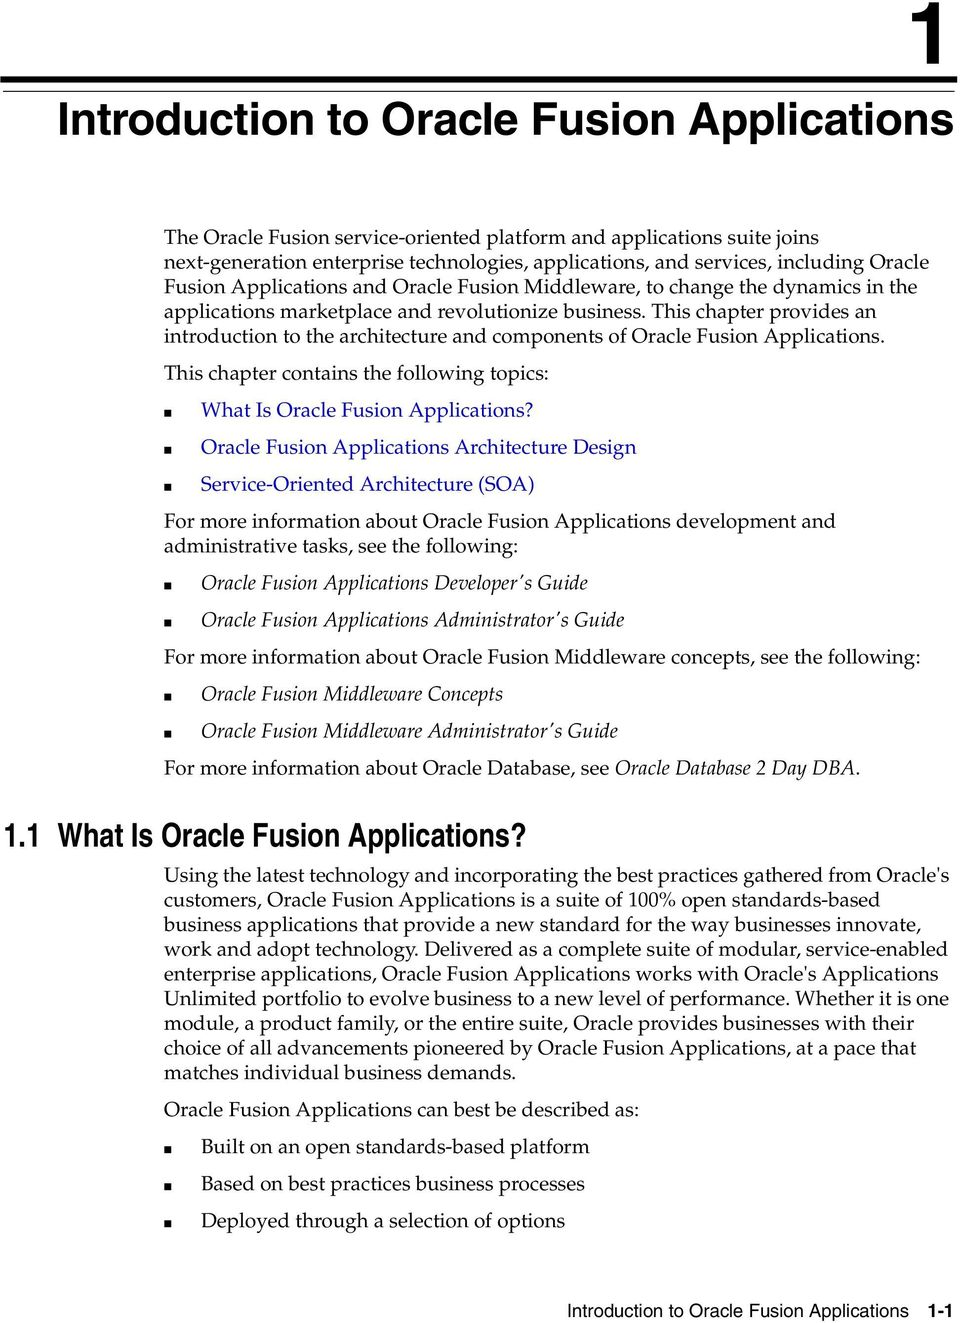 This chapter provides an introduction to the architecture and components of Oracle Fusion Applications. This chapter contains the following topics: What Is Oracle Fusion Applications?